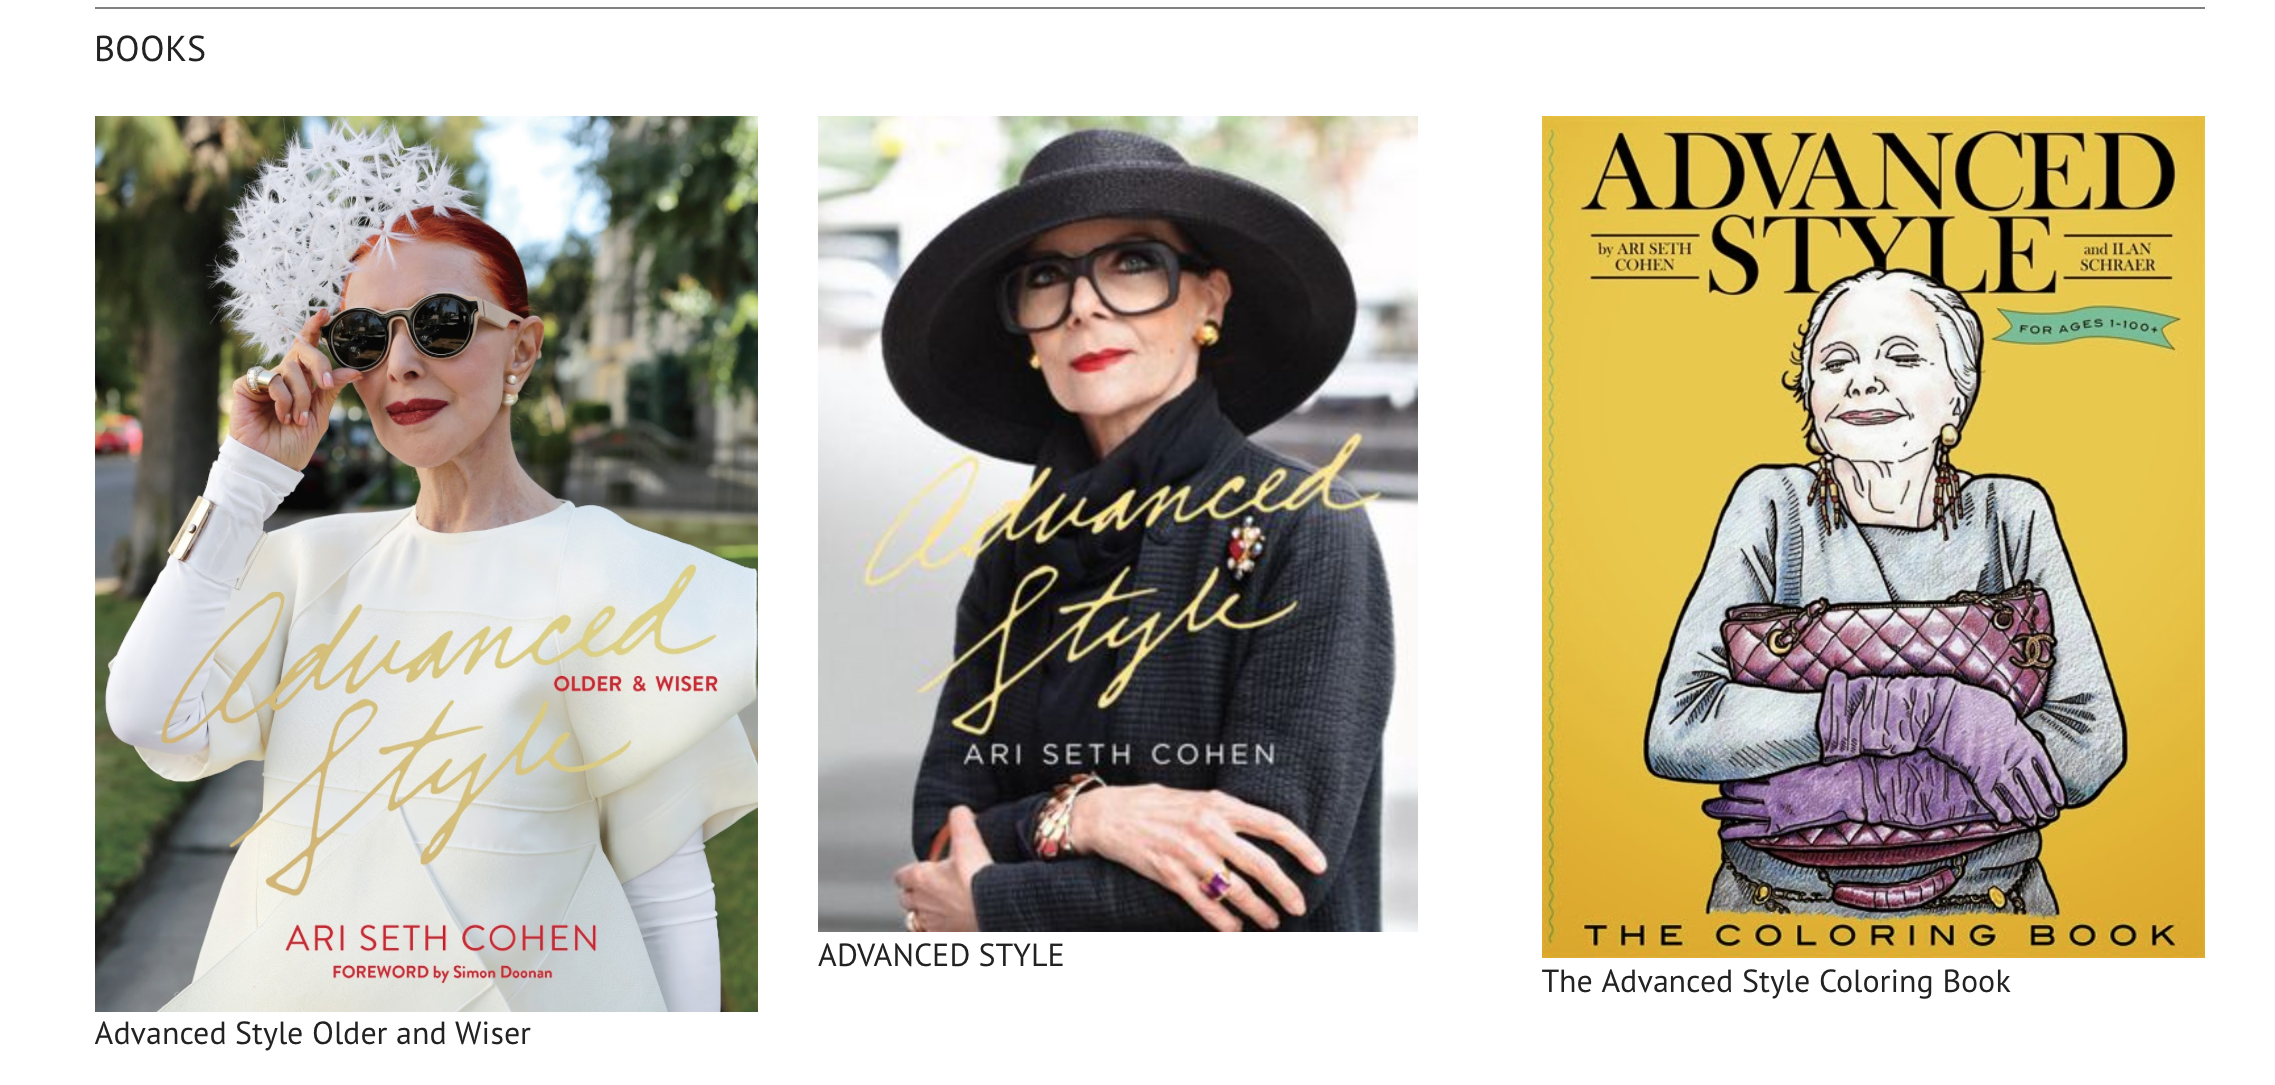 Advanced Style Gift Guide - Advanced Style